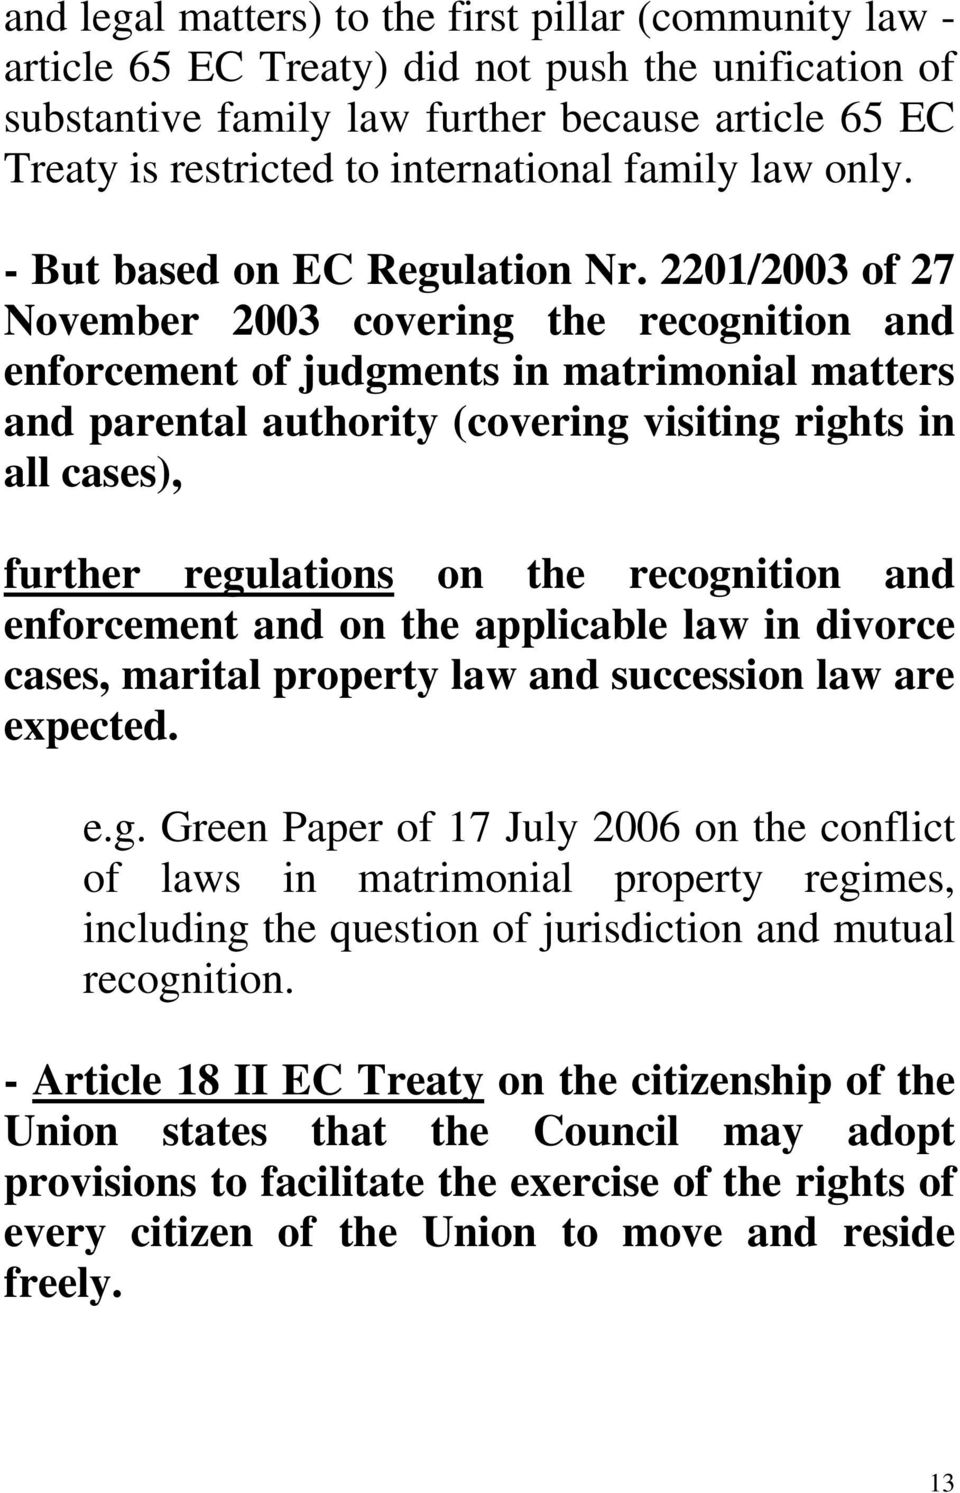 2201/2003 of 27 November 2003 covering the recognition and enforcement of judgments in matrimonial matters and parental authority (covering visiting rights in all cases), further regulations on the